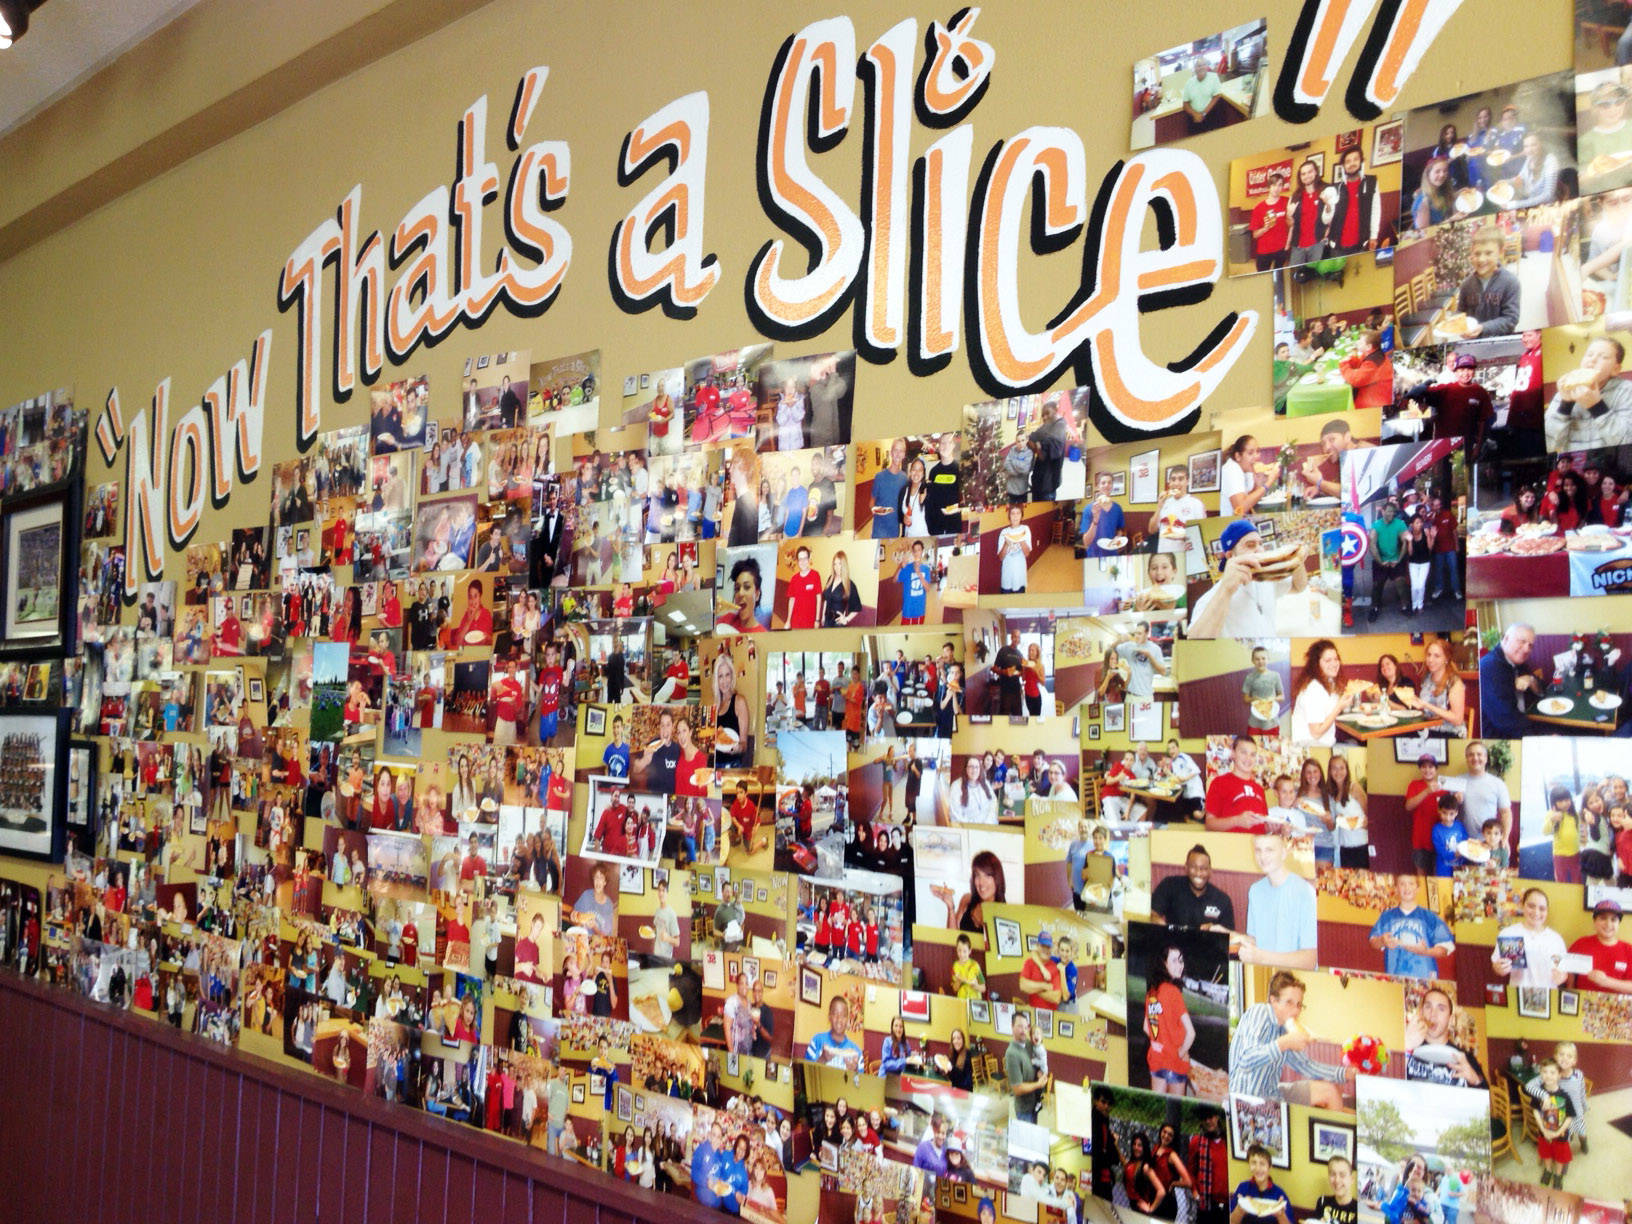 e720d4f2f47e19f2bf1c_A_Slice_of_Life_wall_at_Nicks.jpg